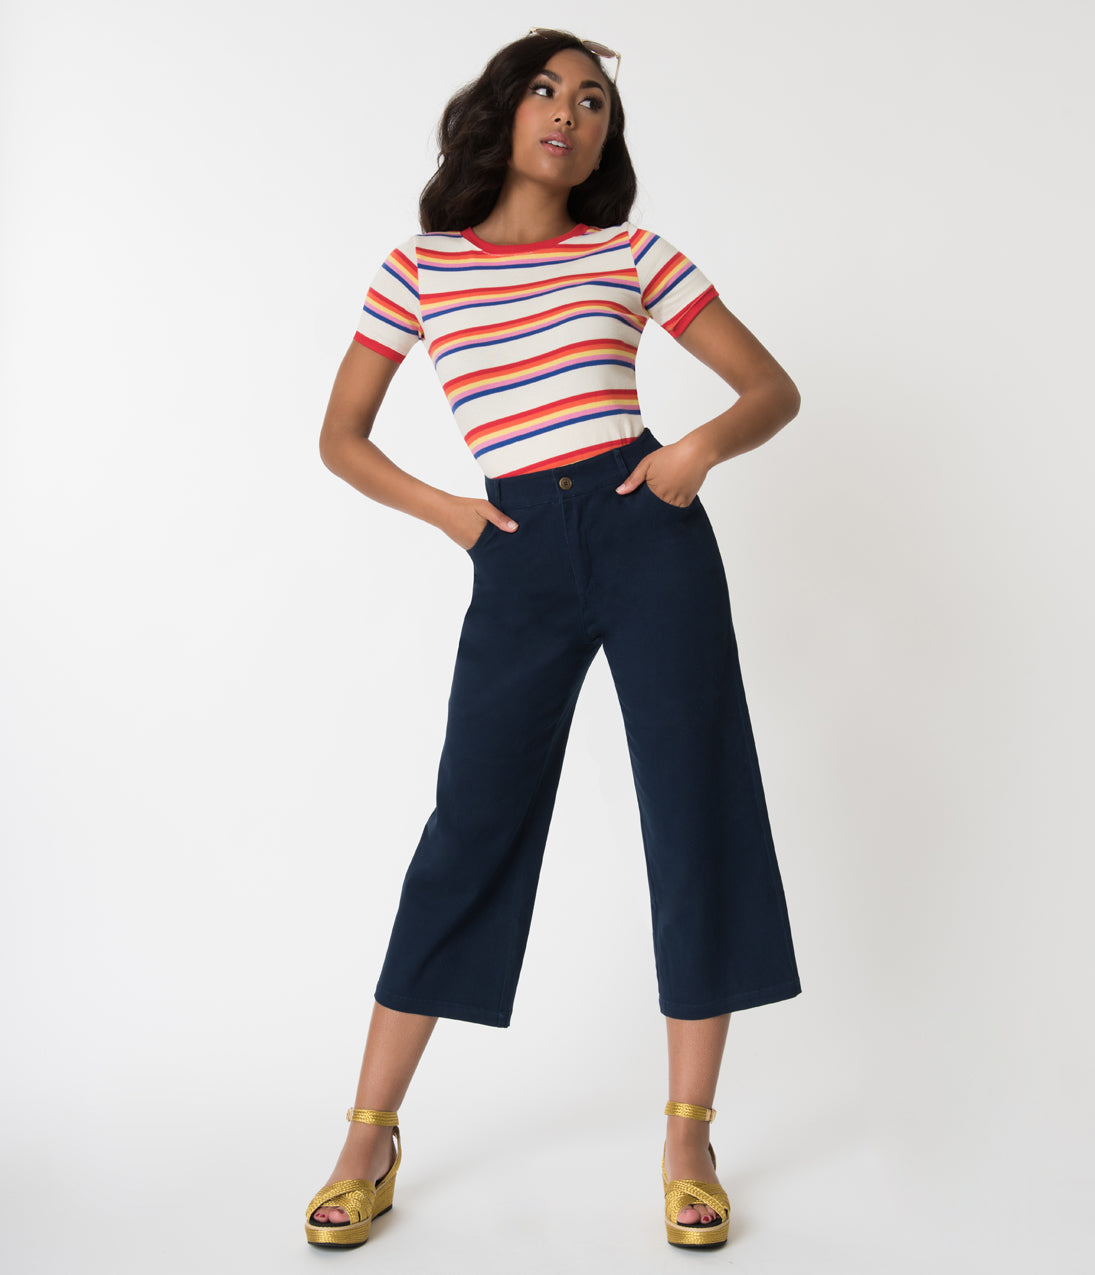 1950s Pants & Jeans- High Waist, Wide Leg, Capri, Pedal Pushers Retro Style Navy Blue High Waist Cotton Capri Pants $68.00 AT vintagedancer.com